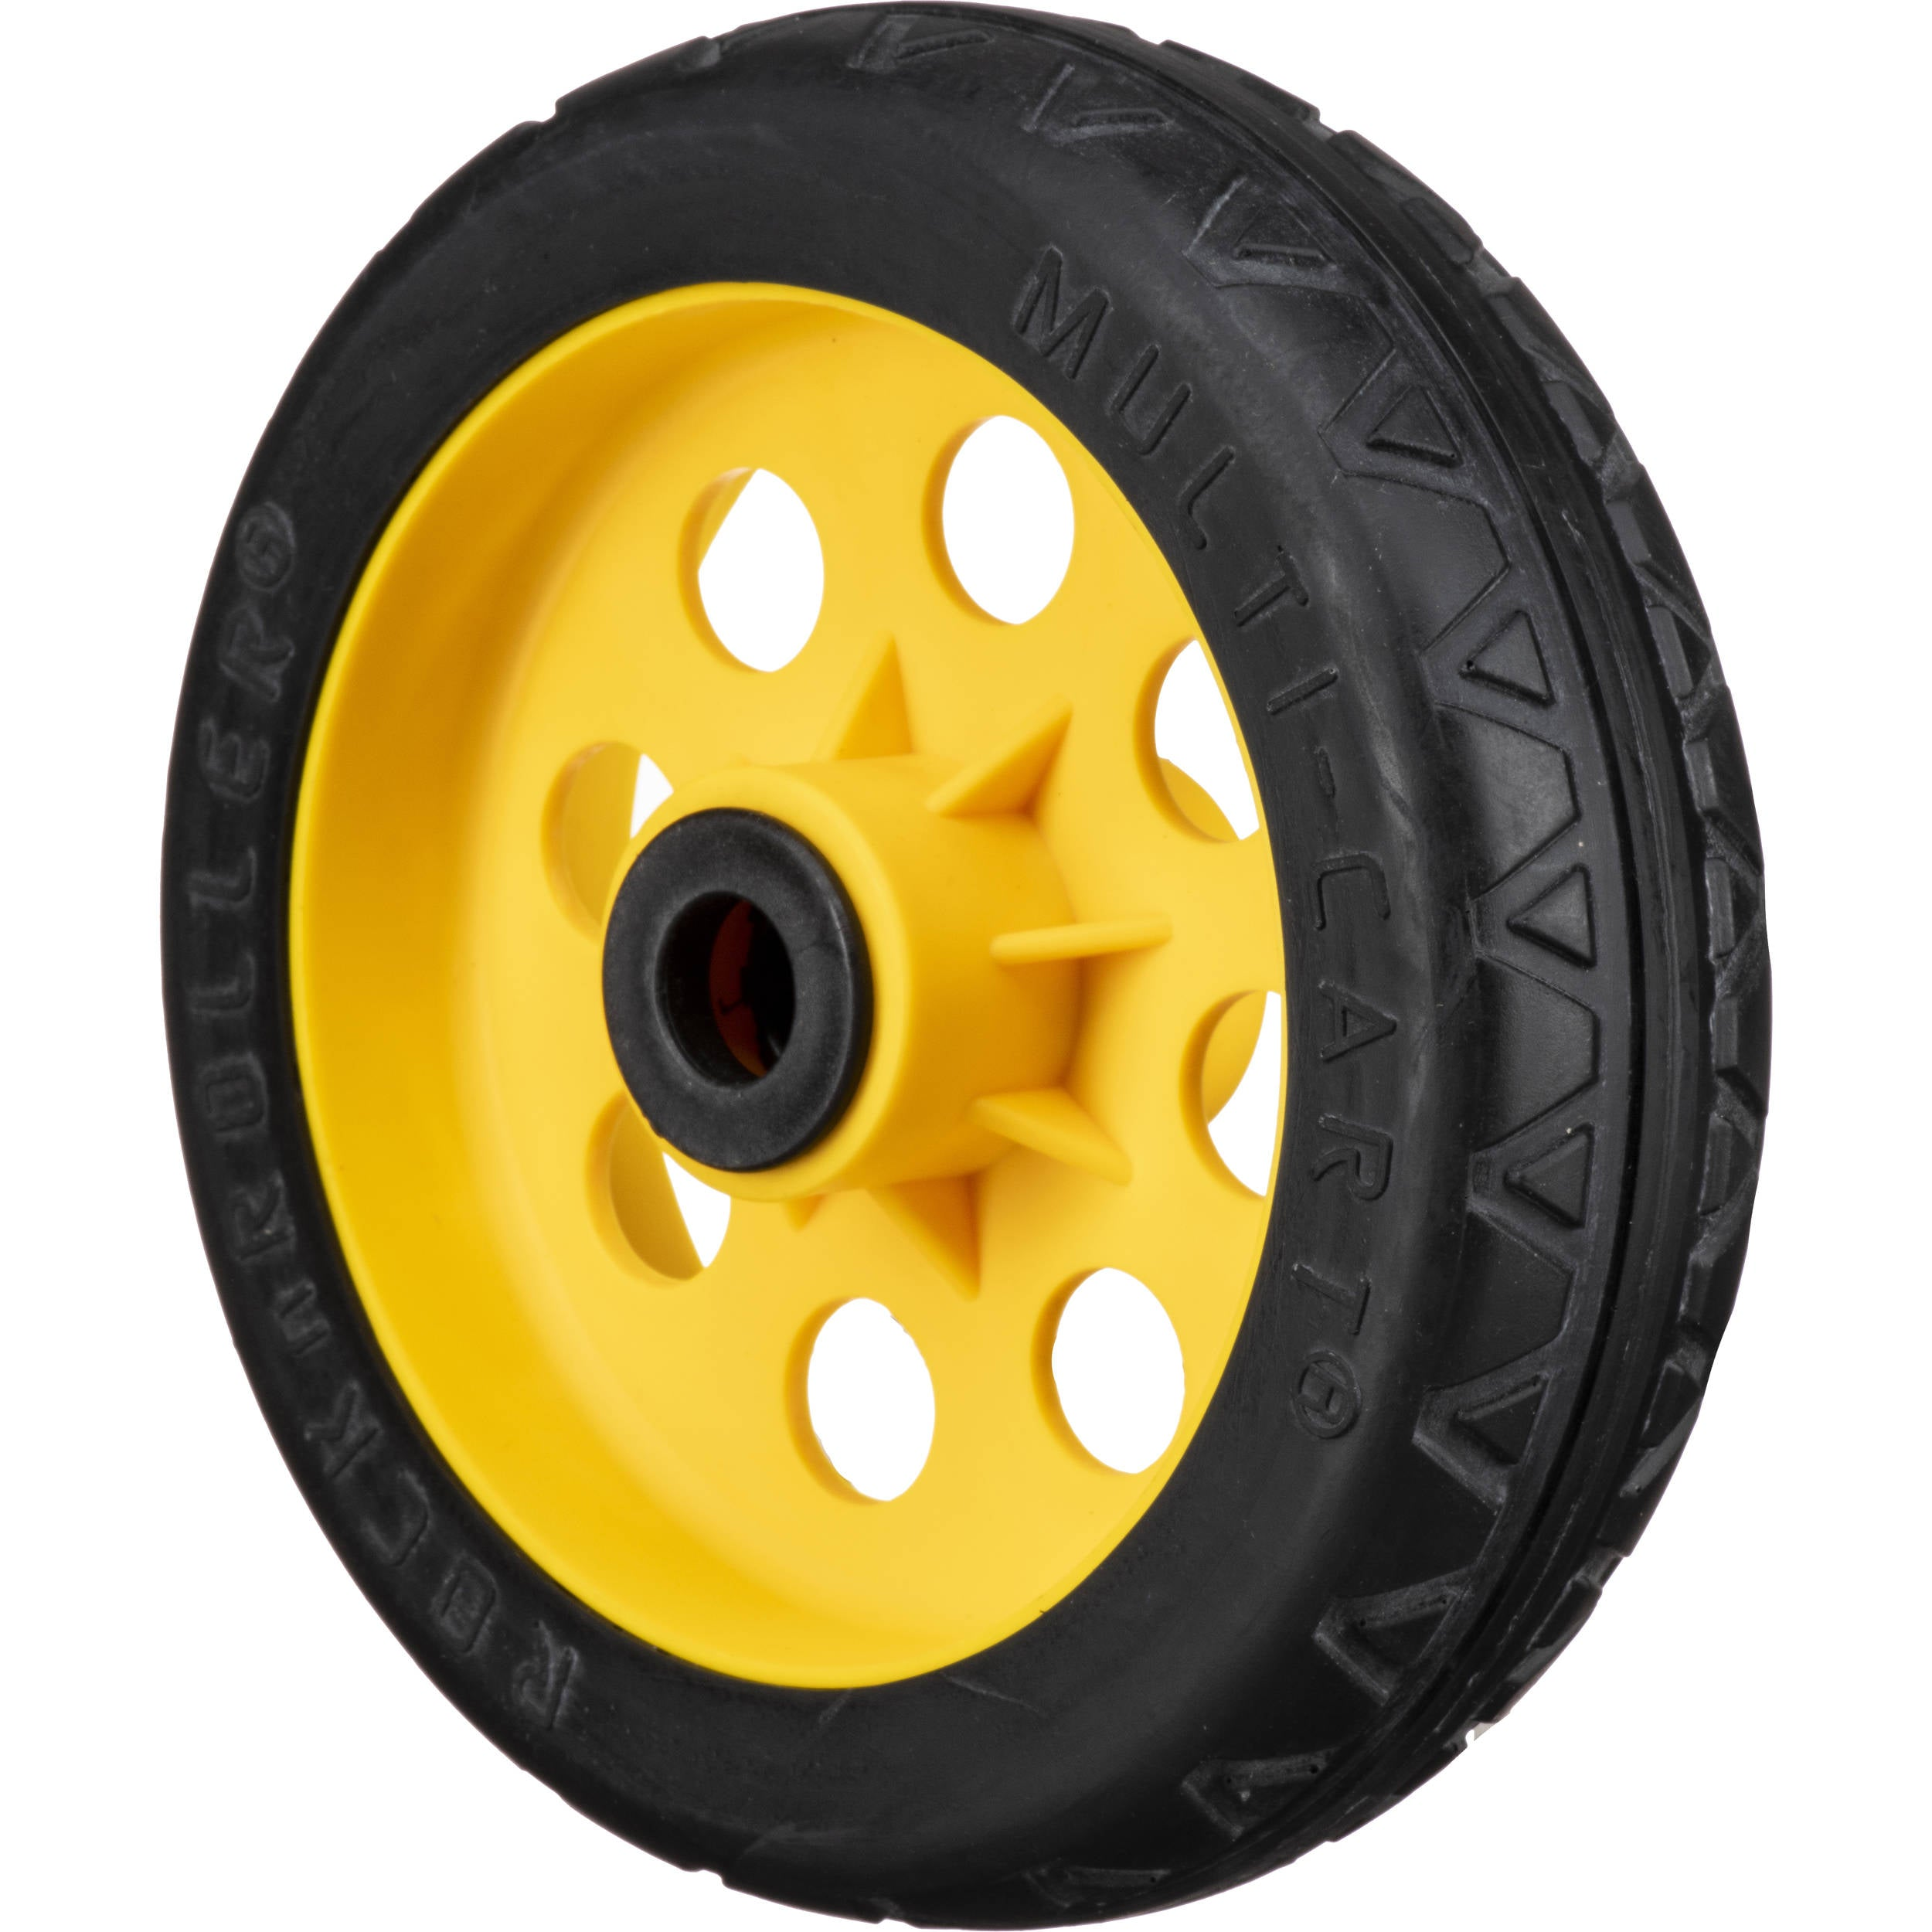 "MultiCart R-Trac Symmetrical Wheel for R12 Caster (8 x 2"", Yellow Hub, 2-Pack)"